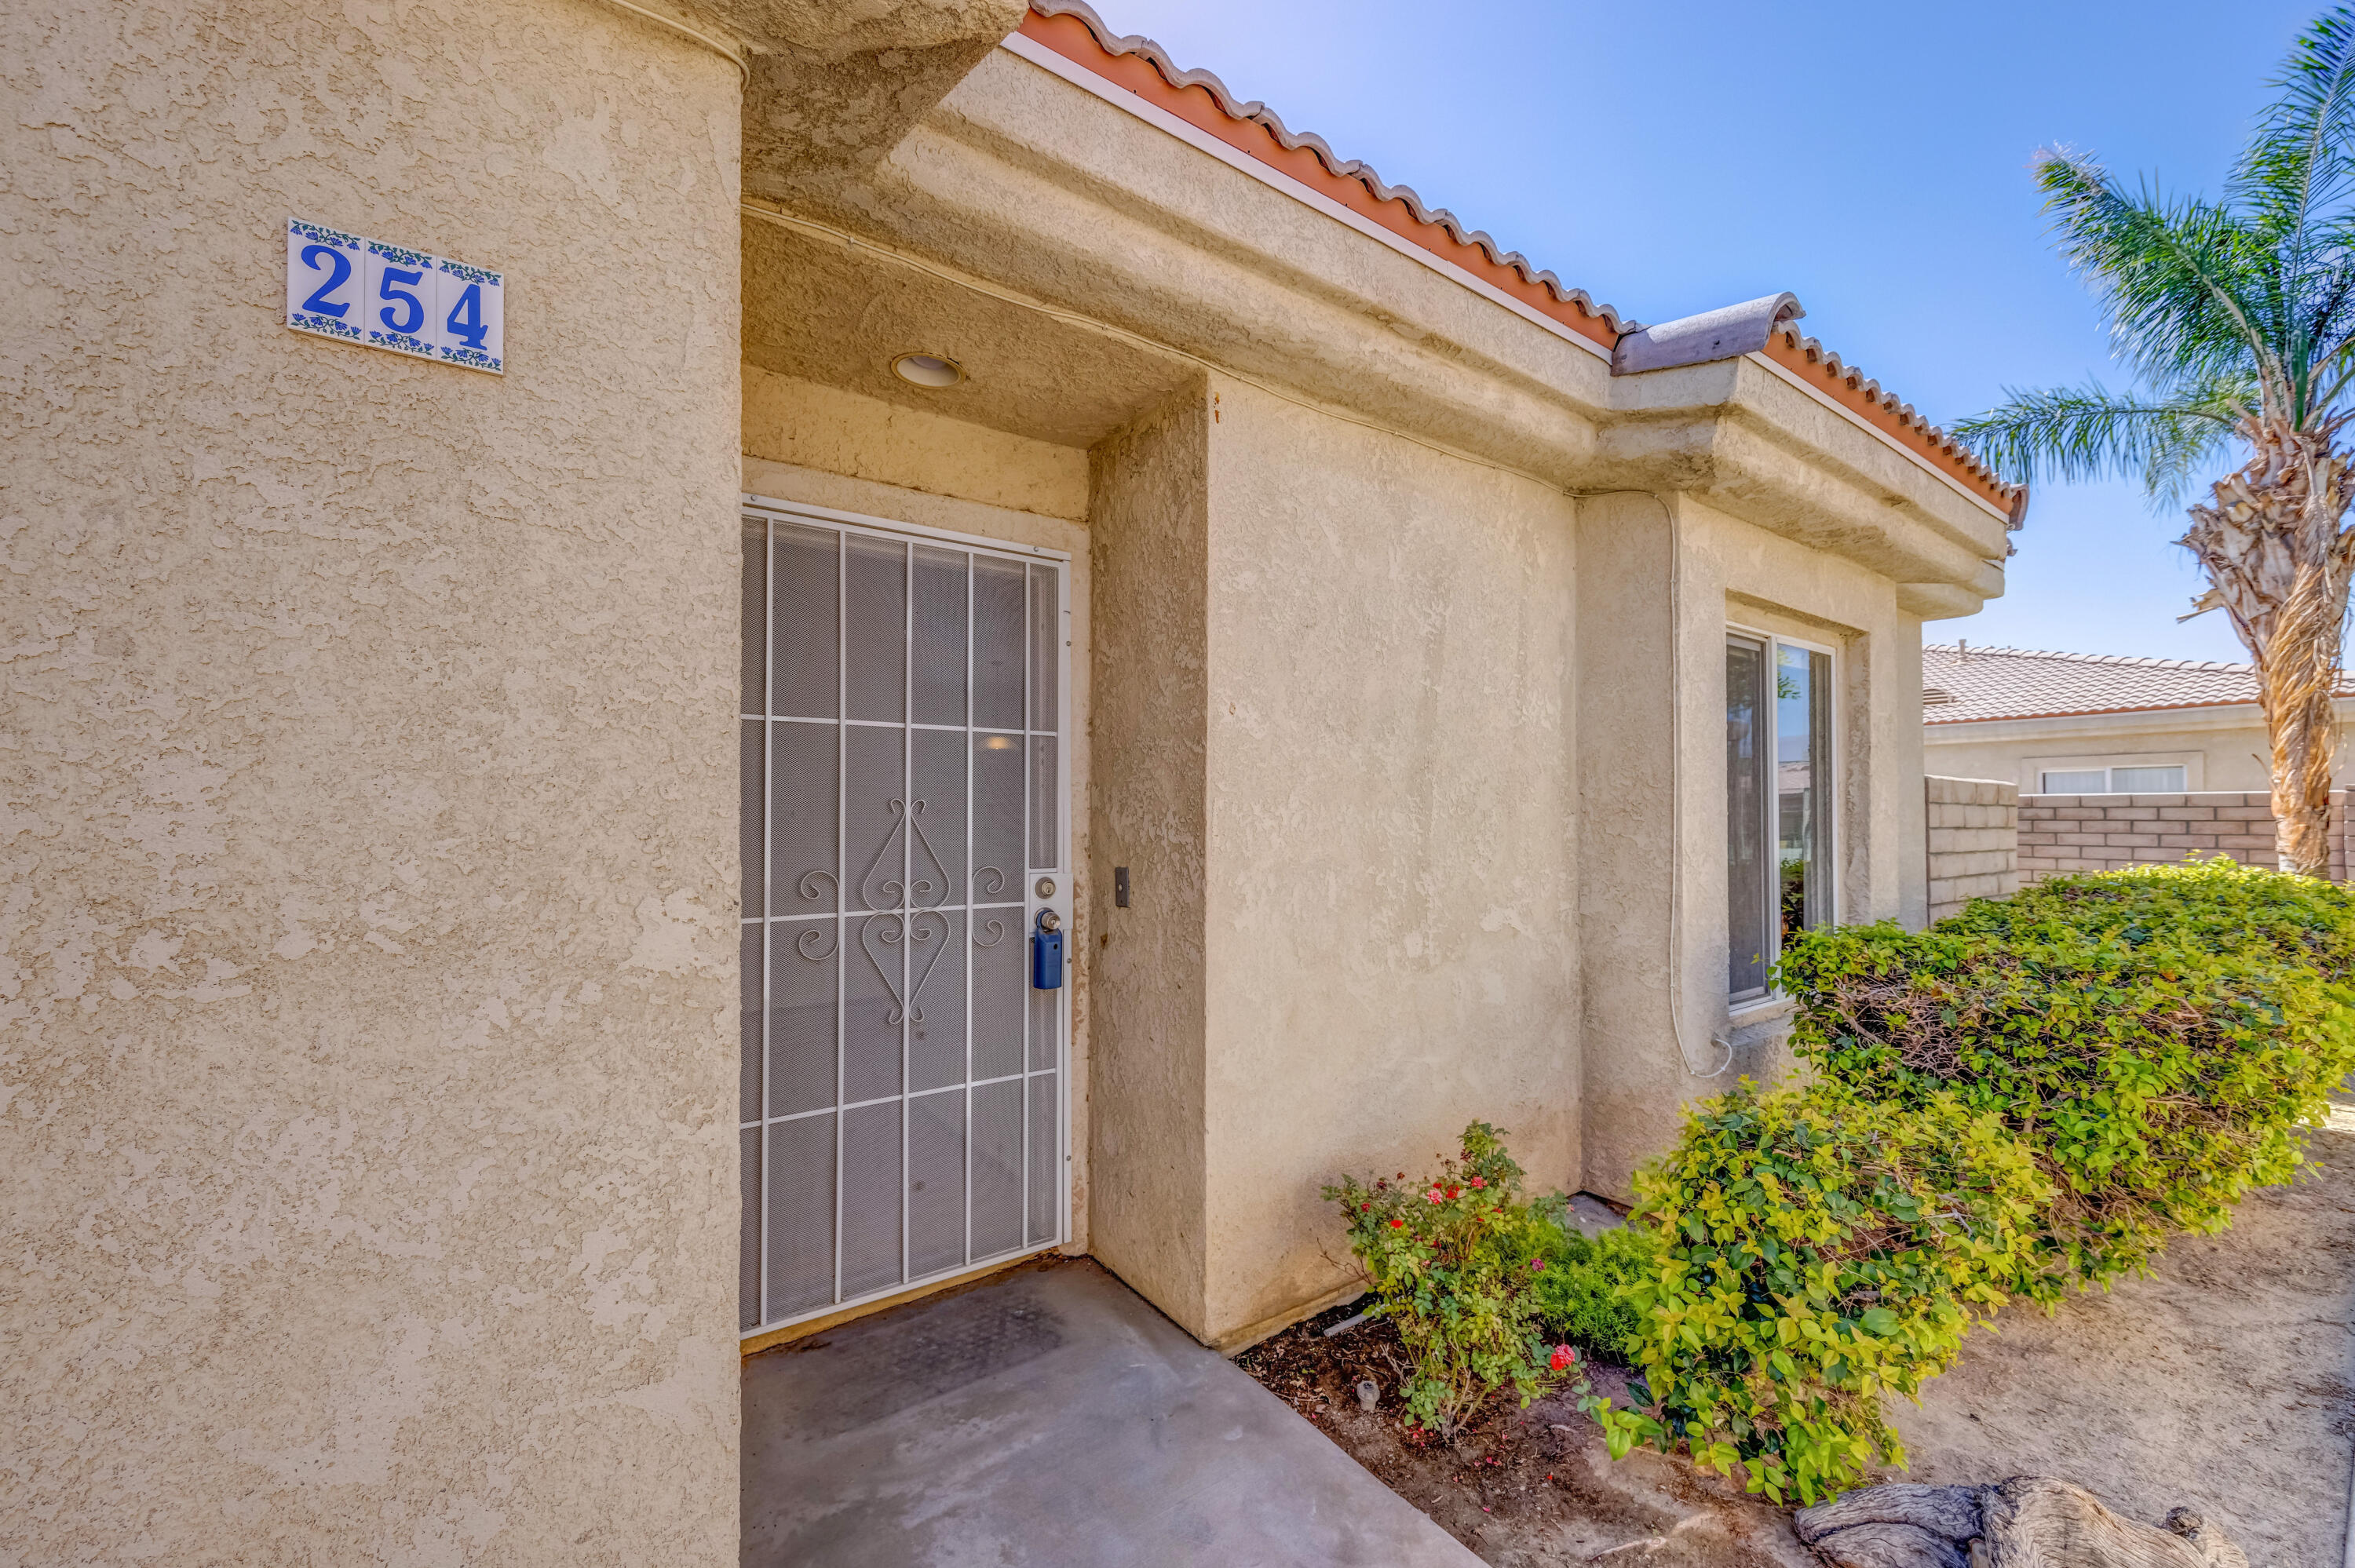 Back on market! Buyer couldn't perform. Turnkey condo features 2 bedroom, 2 bath, plus den/ 3rd bedroom and detached garage. Appliances included. The Summer Breeze community amenities include tennis courts, pools and spa, clubhouse,  basketball courts. This community is approved for FHA financing.